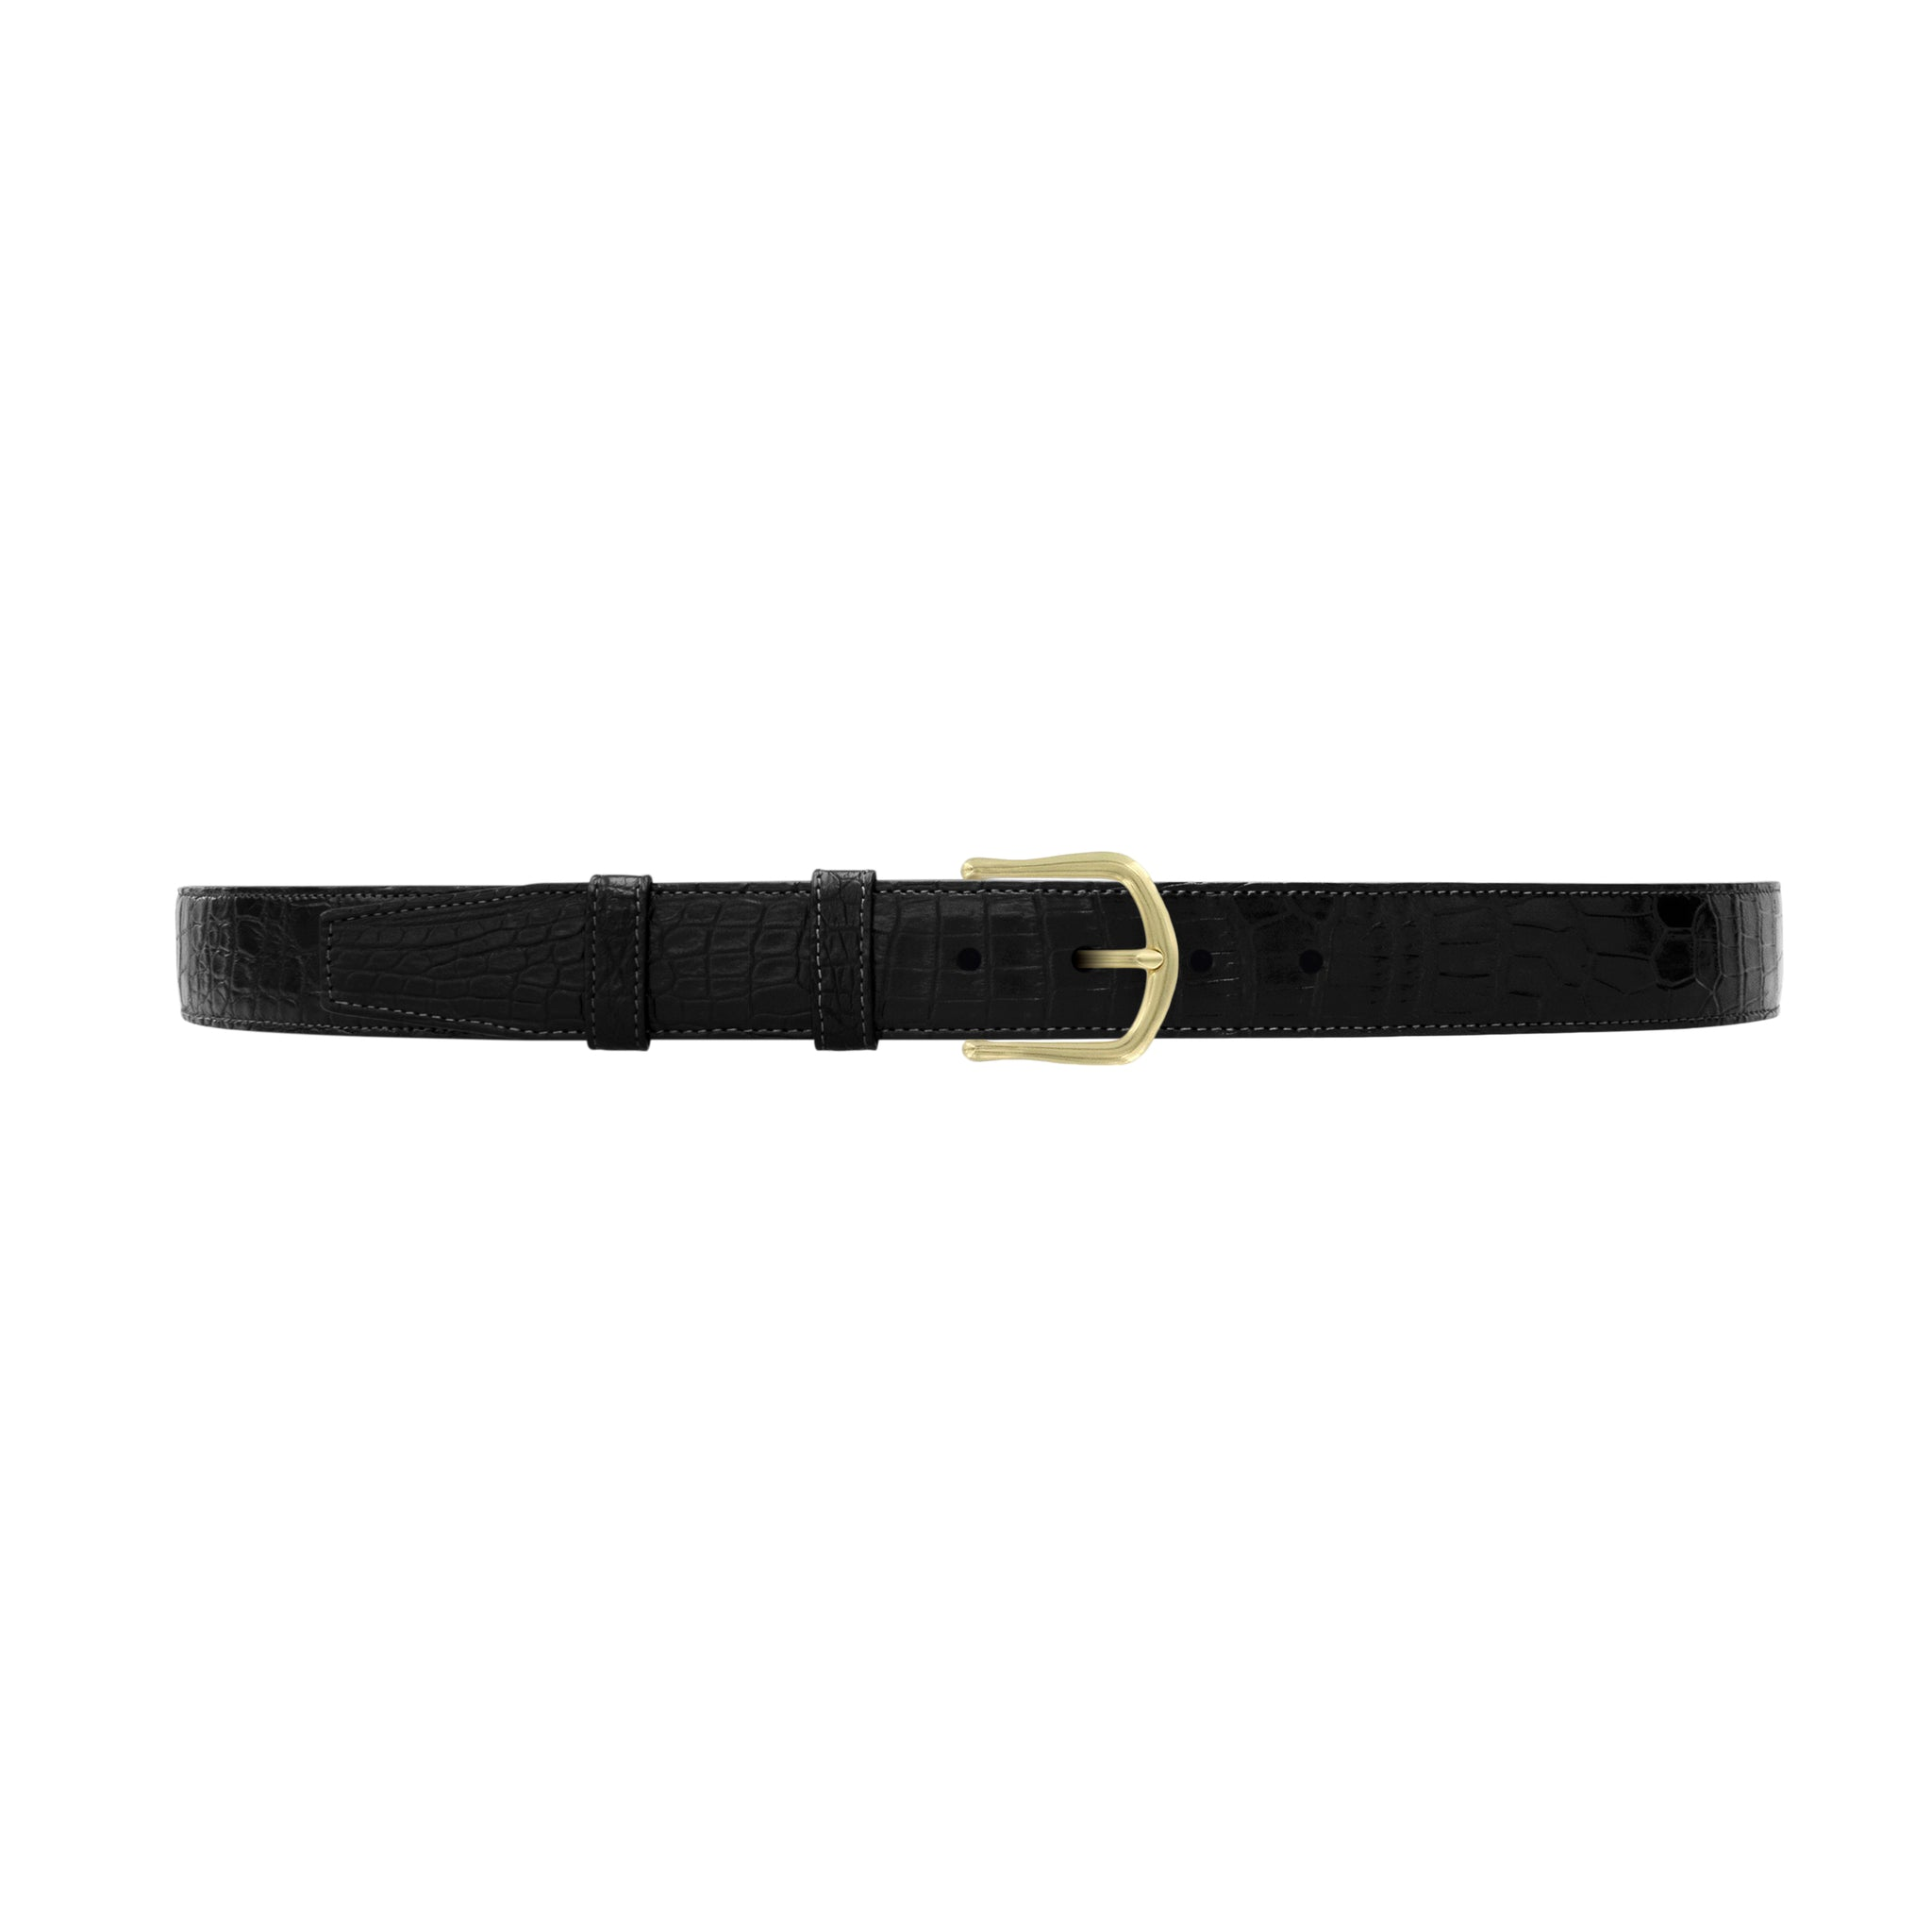 "1 1/4"" Raven Classic Belt with Derby Cocktail Buckle in Brass"